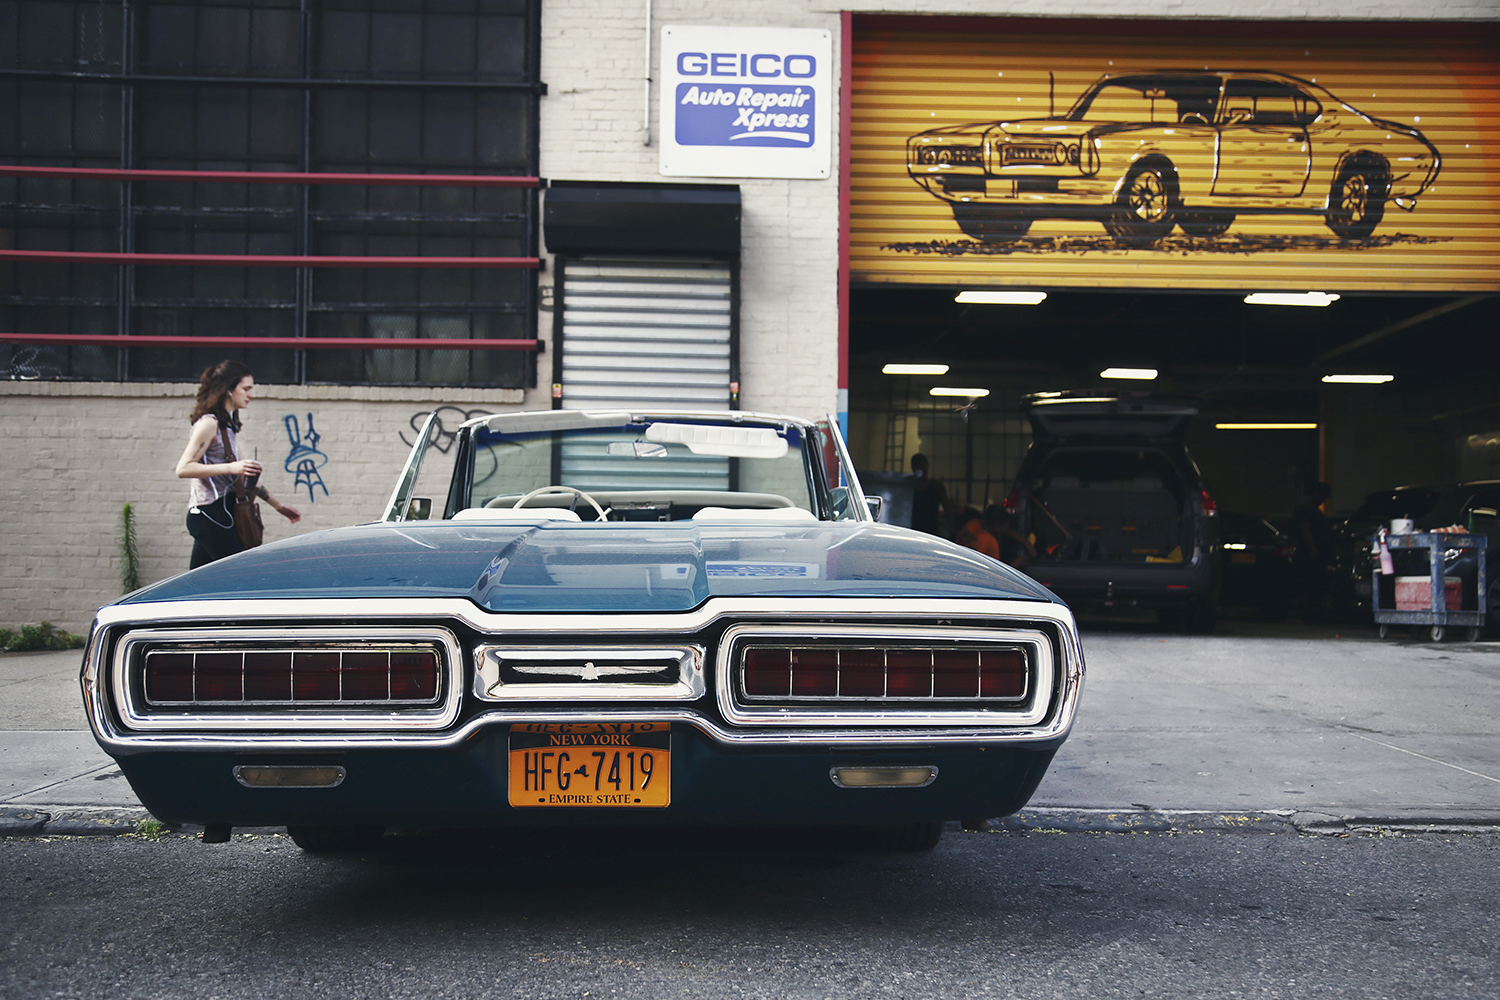 nyc - caddy garage.jpg